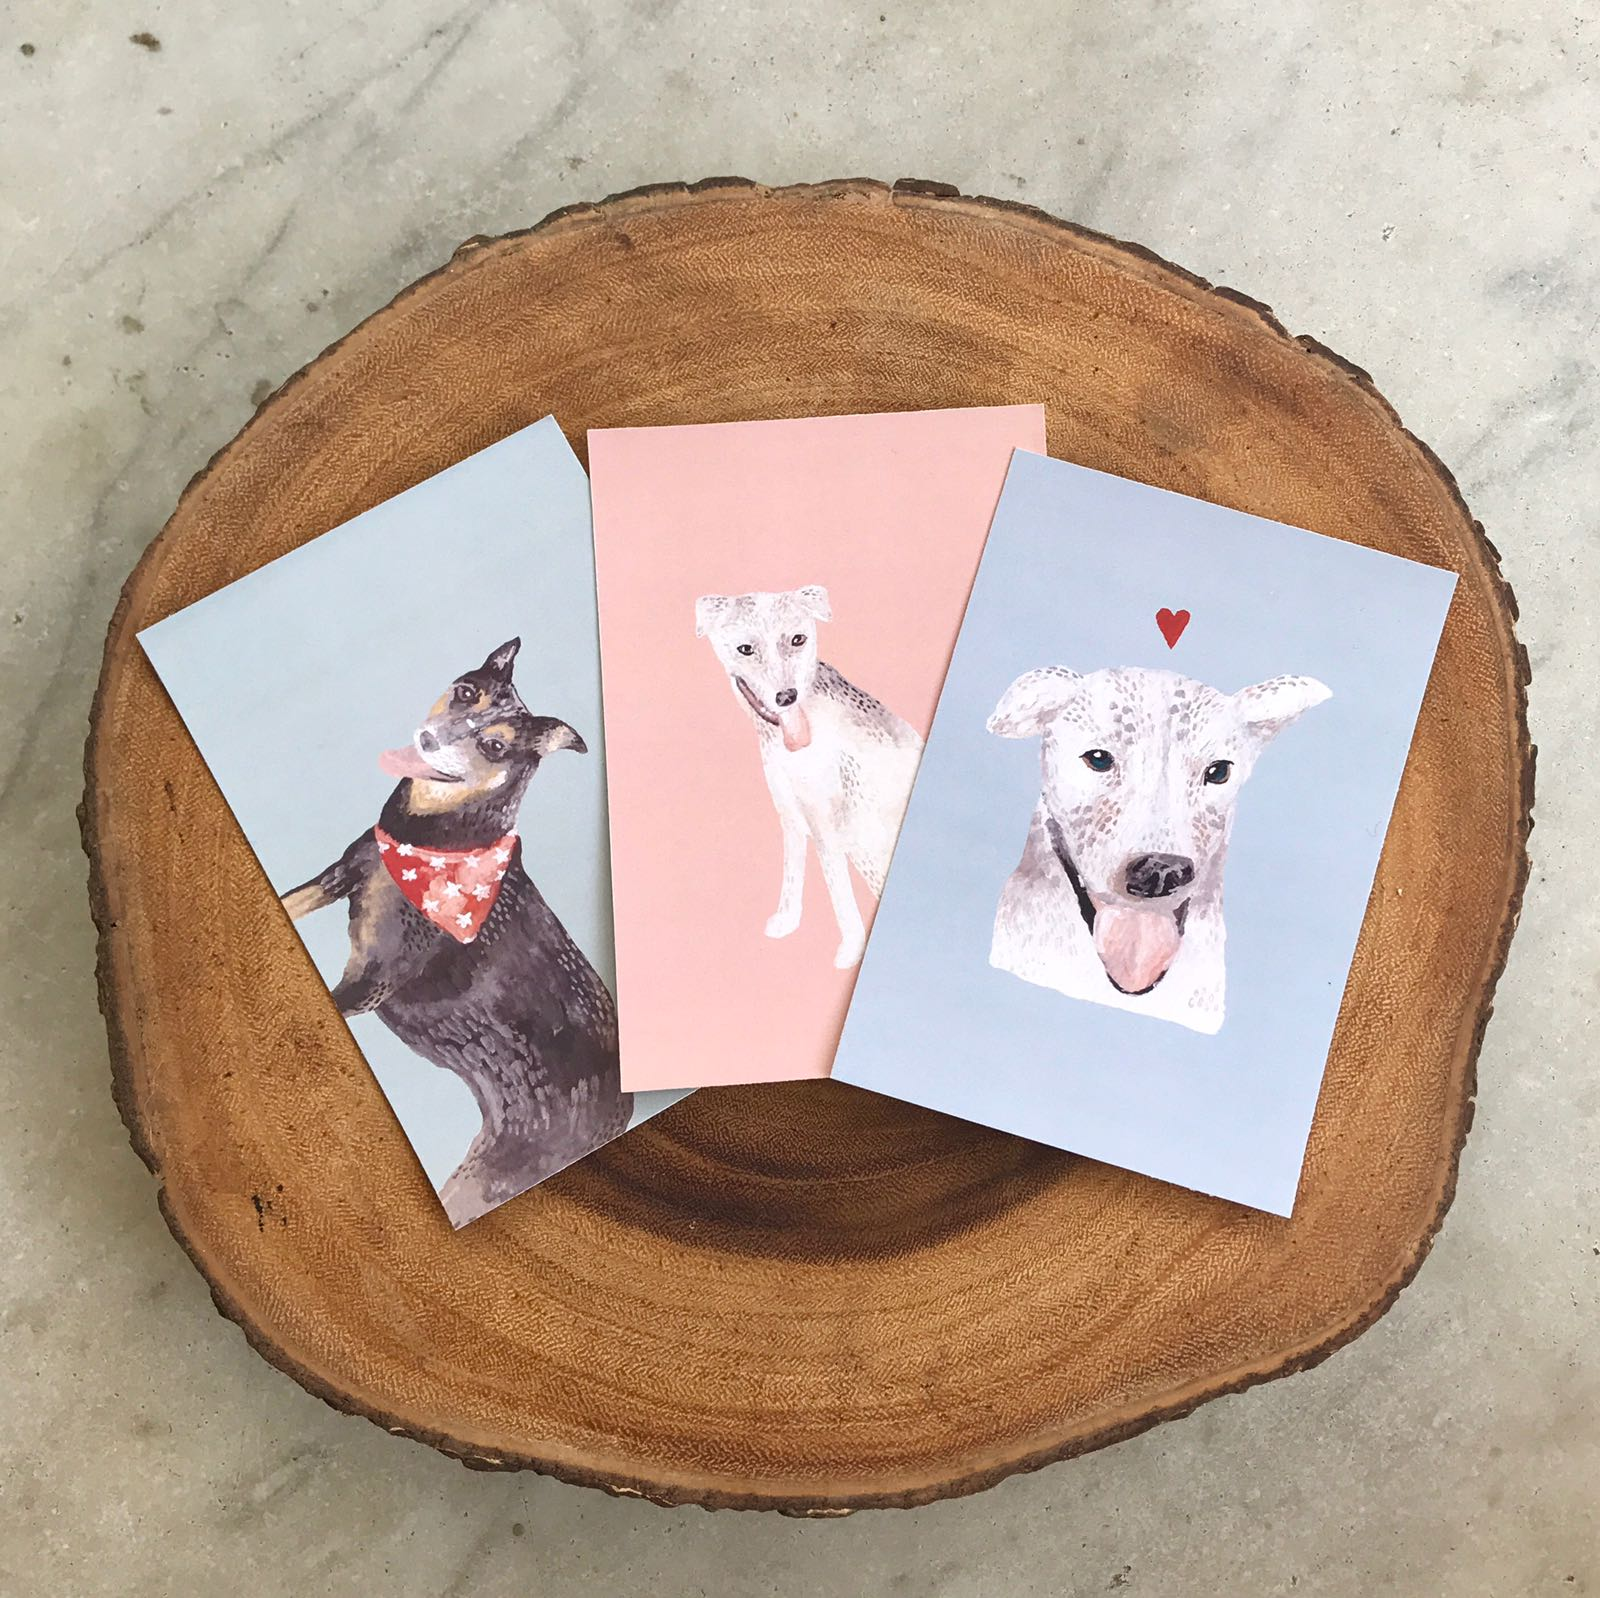 POSTCARD SET - Featuring all 3 Oscas Dogs!